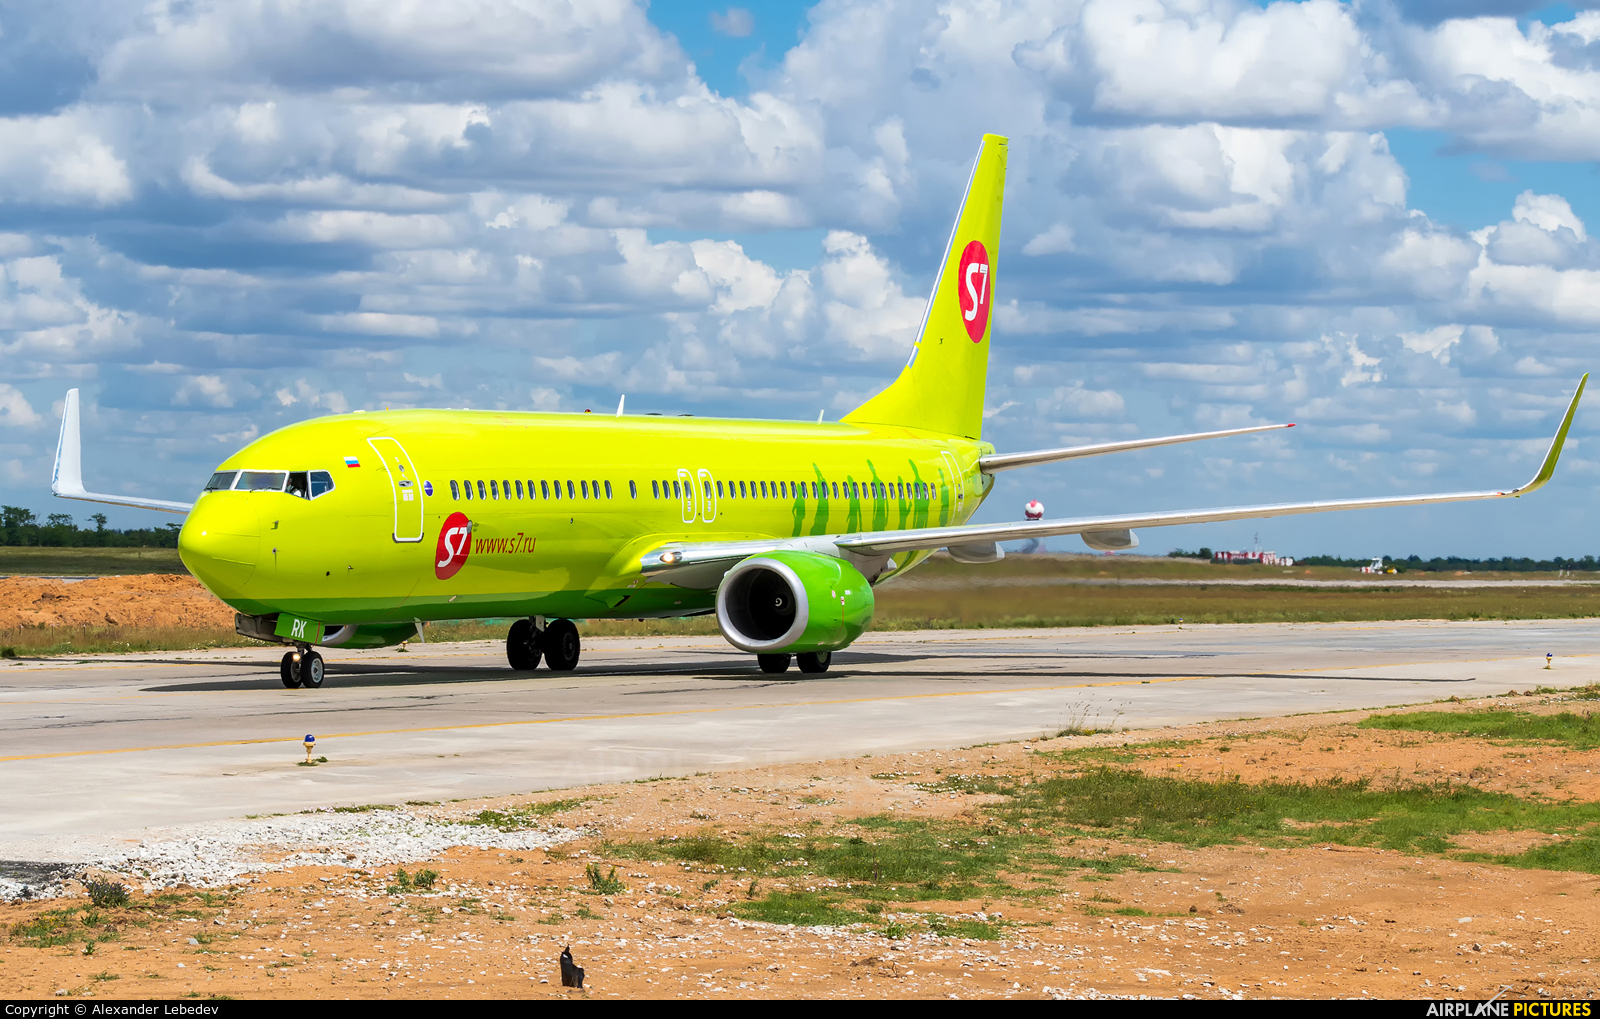 S7 Airlines VQ-BRK aircraft at Undisclosed Location